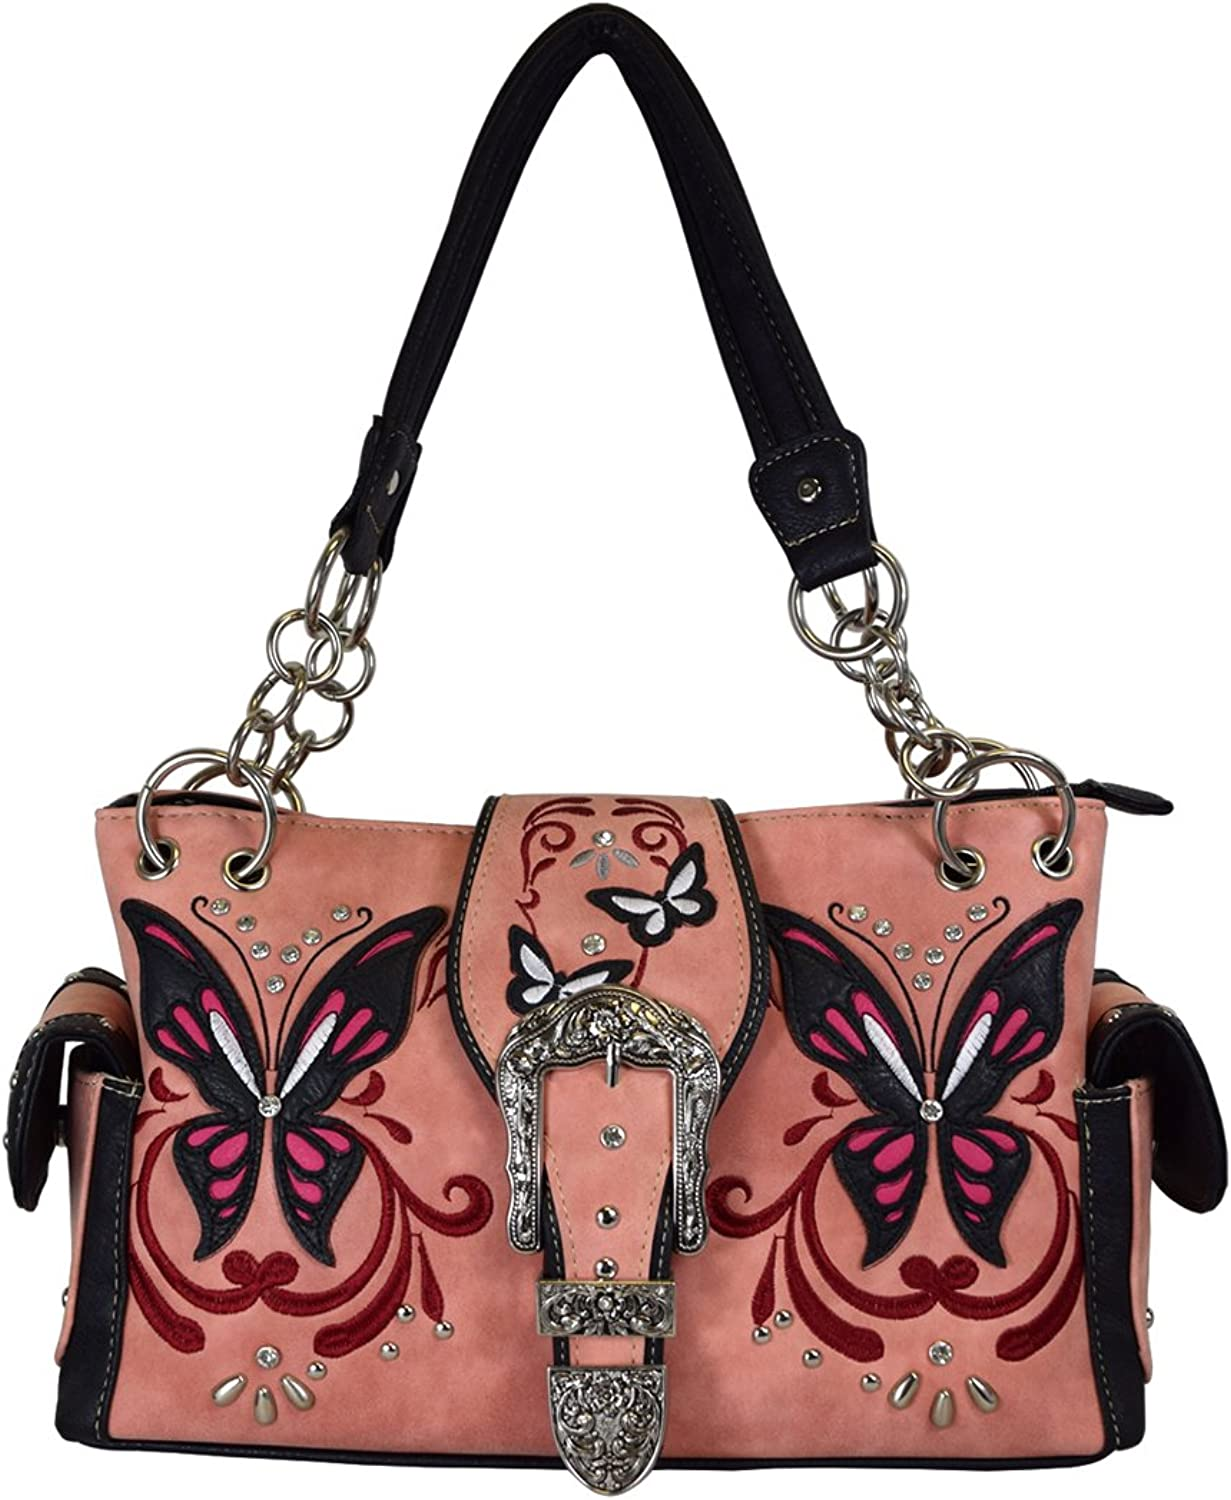 Western Buckle Butterfly Rhinestone Shoulder Bag Women's Top Handle Totes Handbags